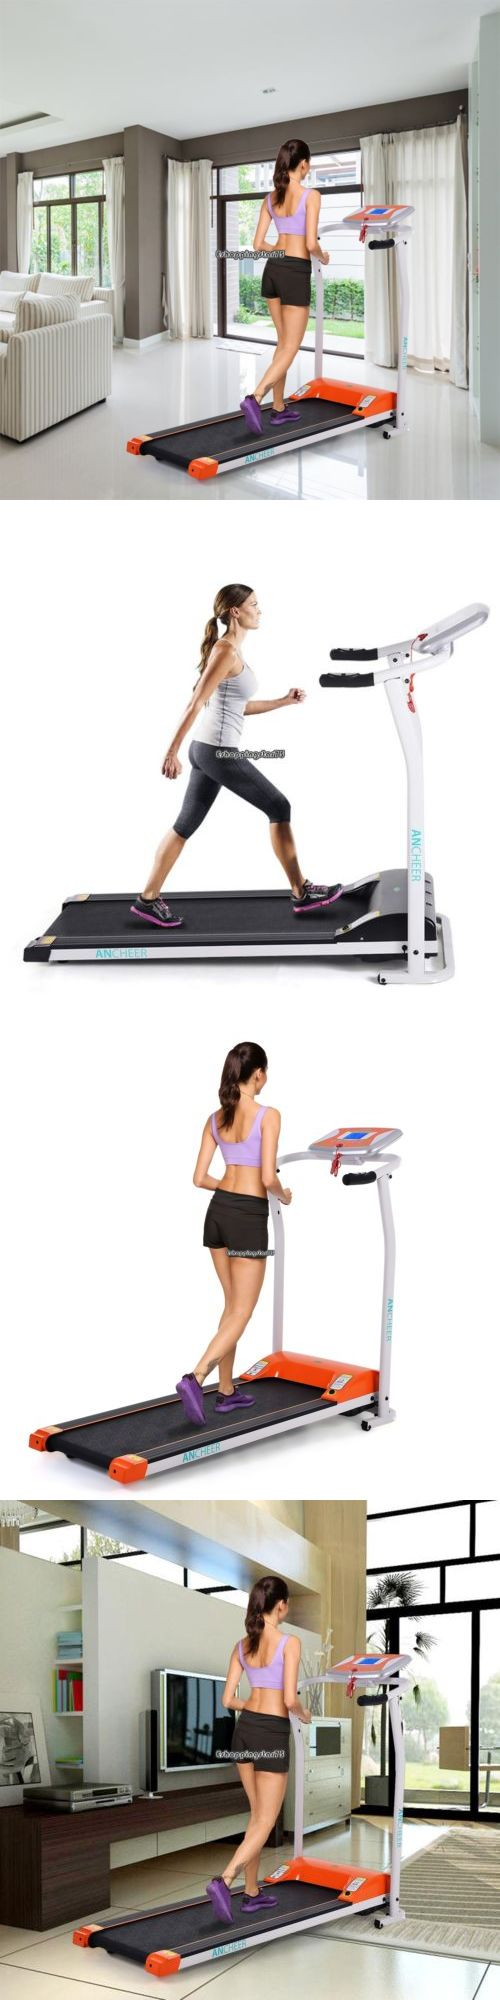 Treadmills 15280: Foldable Treadmill Running Machine Exercise Gym Equipment Eh7e -> BUY IT NOW ONLY: $210 on eBay!